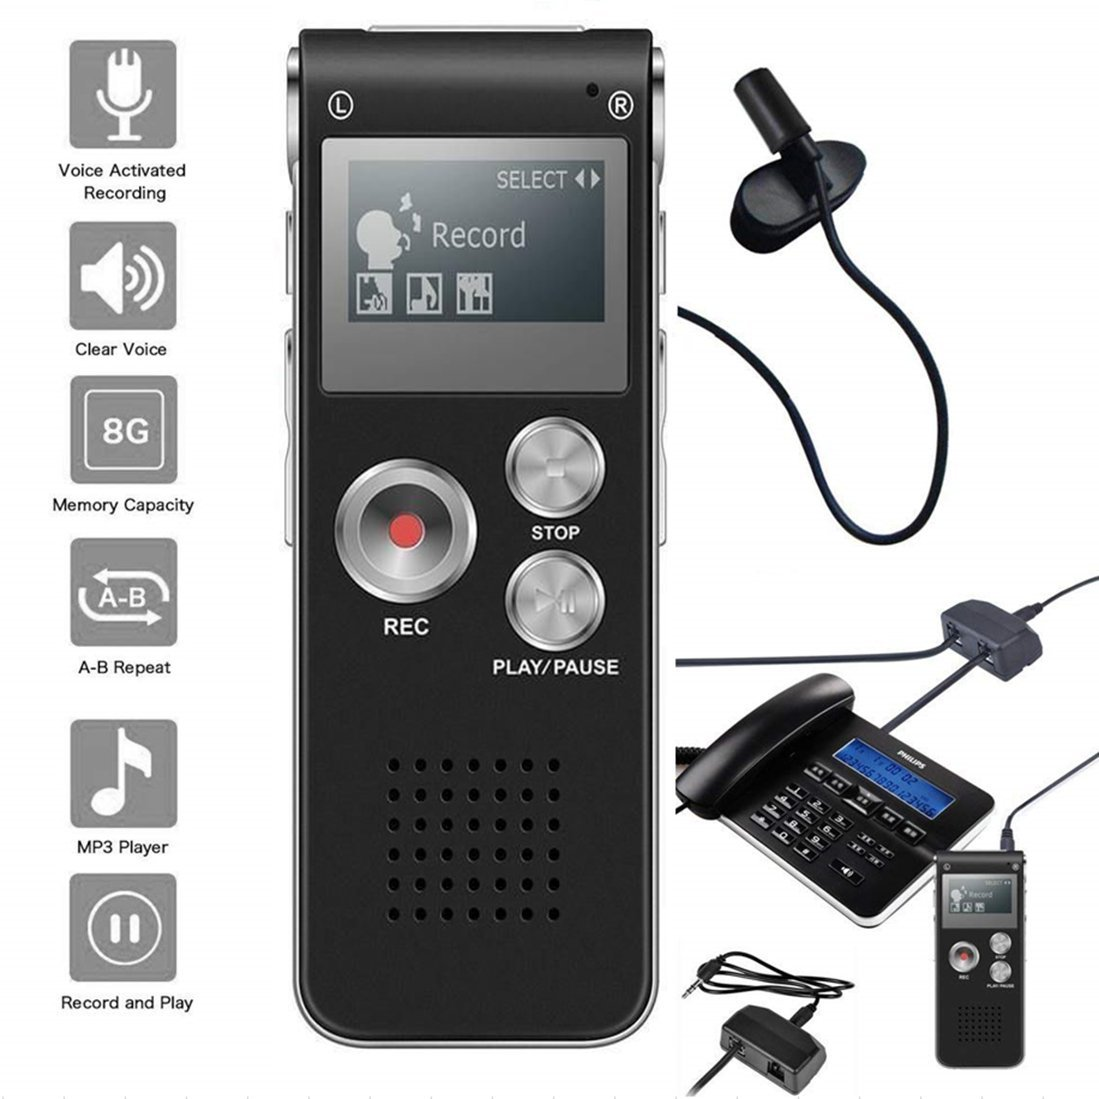 NeeGo Digital Voice Activated Recorder 8GB USB Portable MP3 Player with Mic 3.5mm Microphone - Plus Telephone Pickup Landline Recording Device Recorder by NeeGo